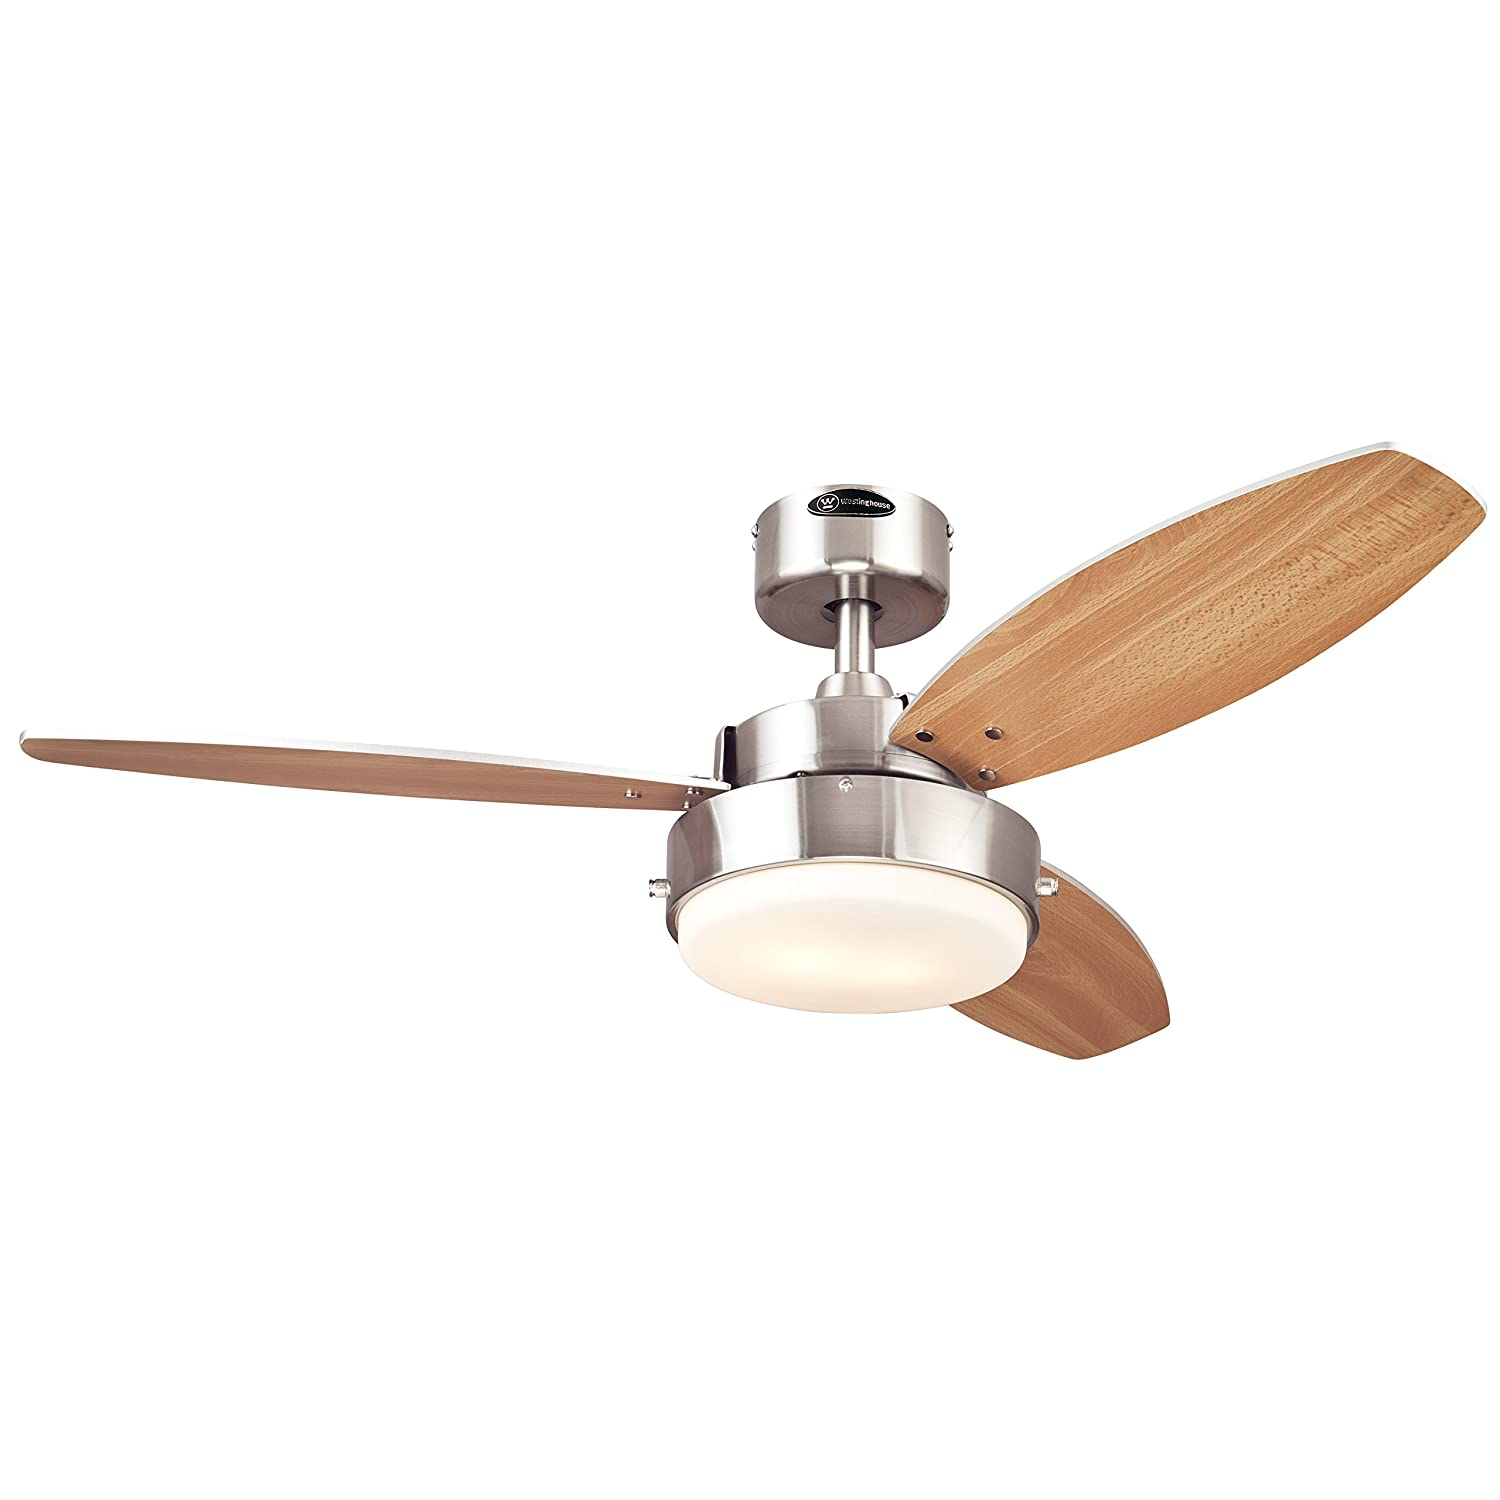 Westinghouse 7247300 Alloy Two-Light Reversible Three-Blade Indoor Ceiling Fan, 42-Inch